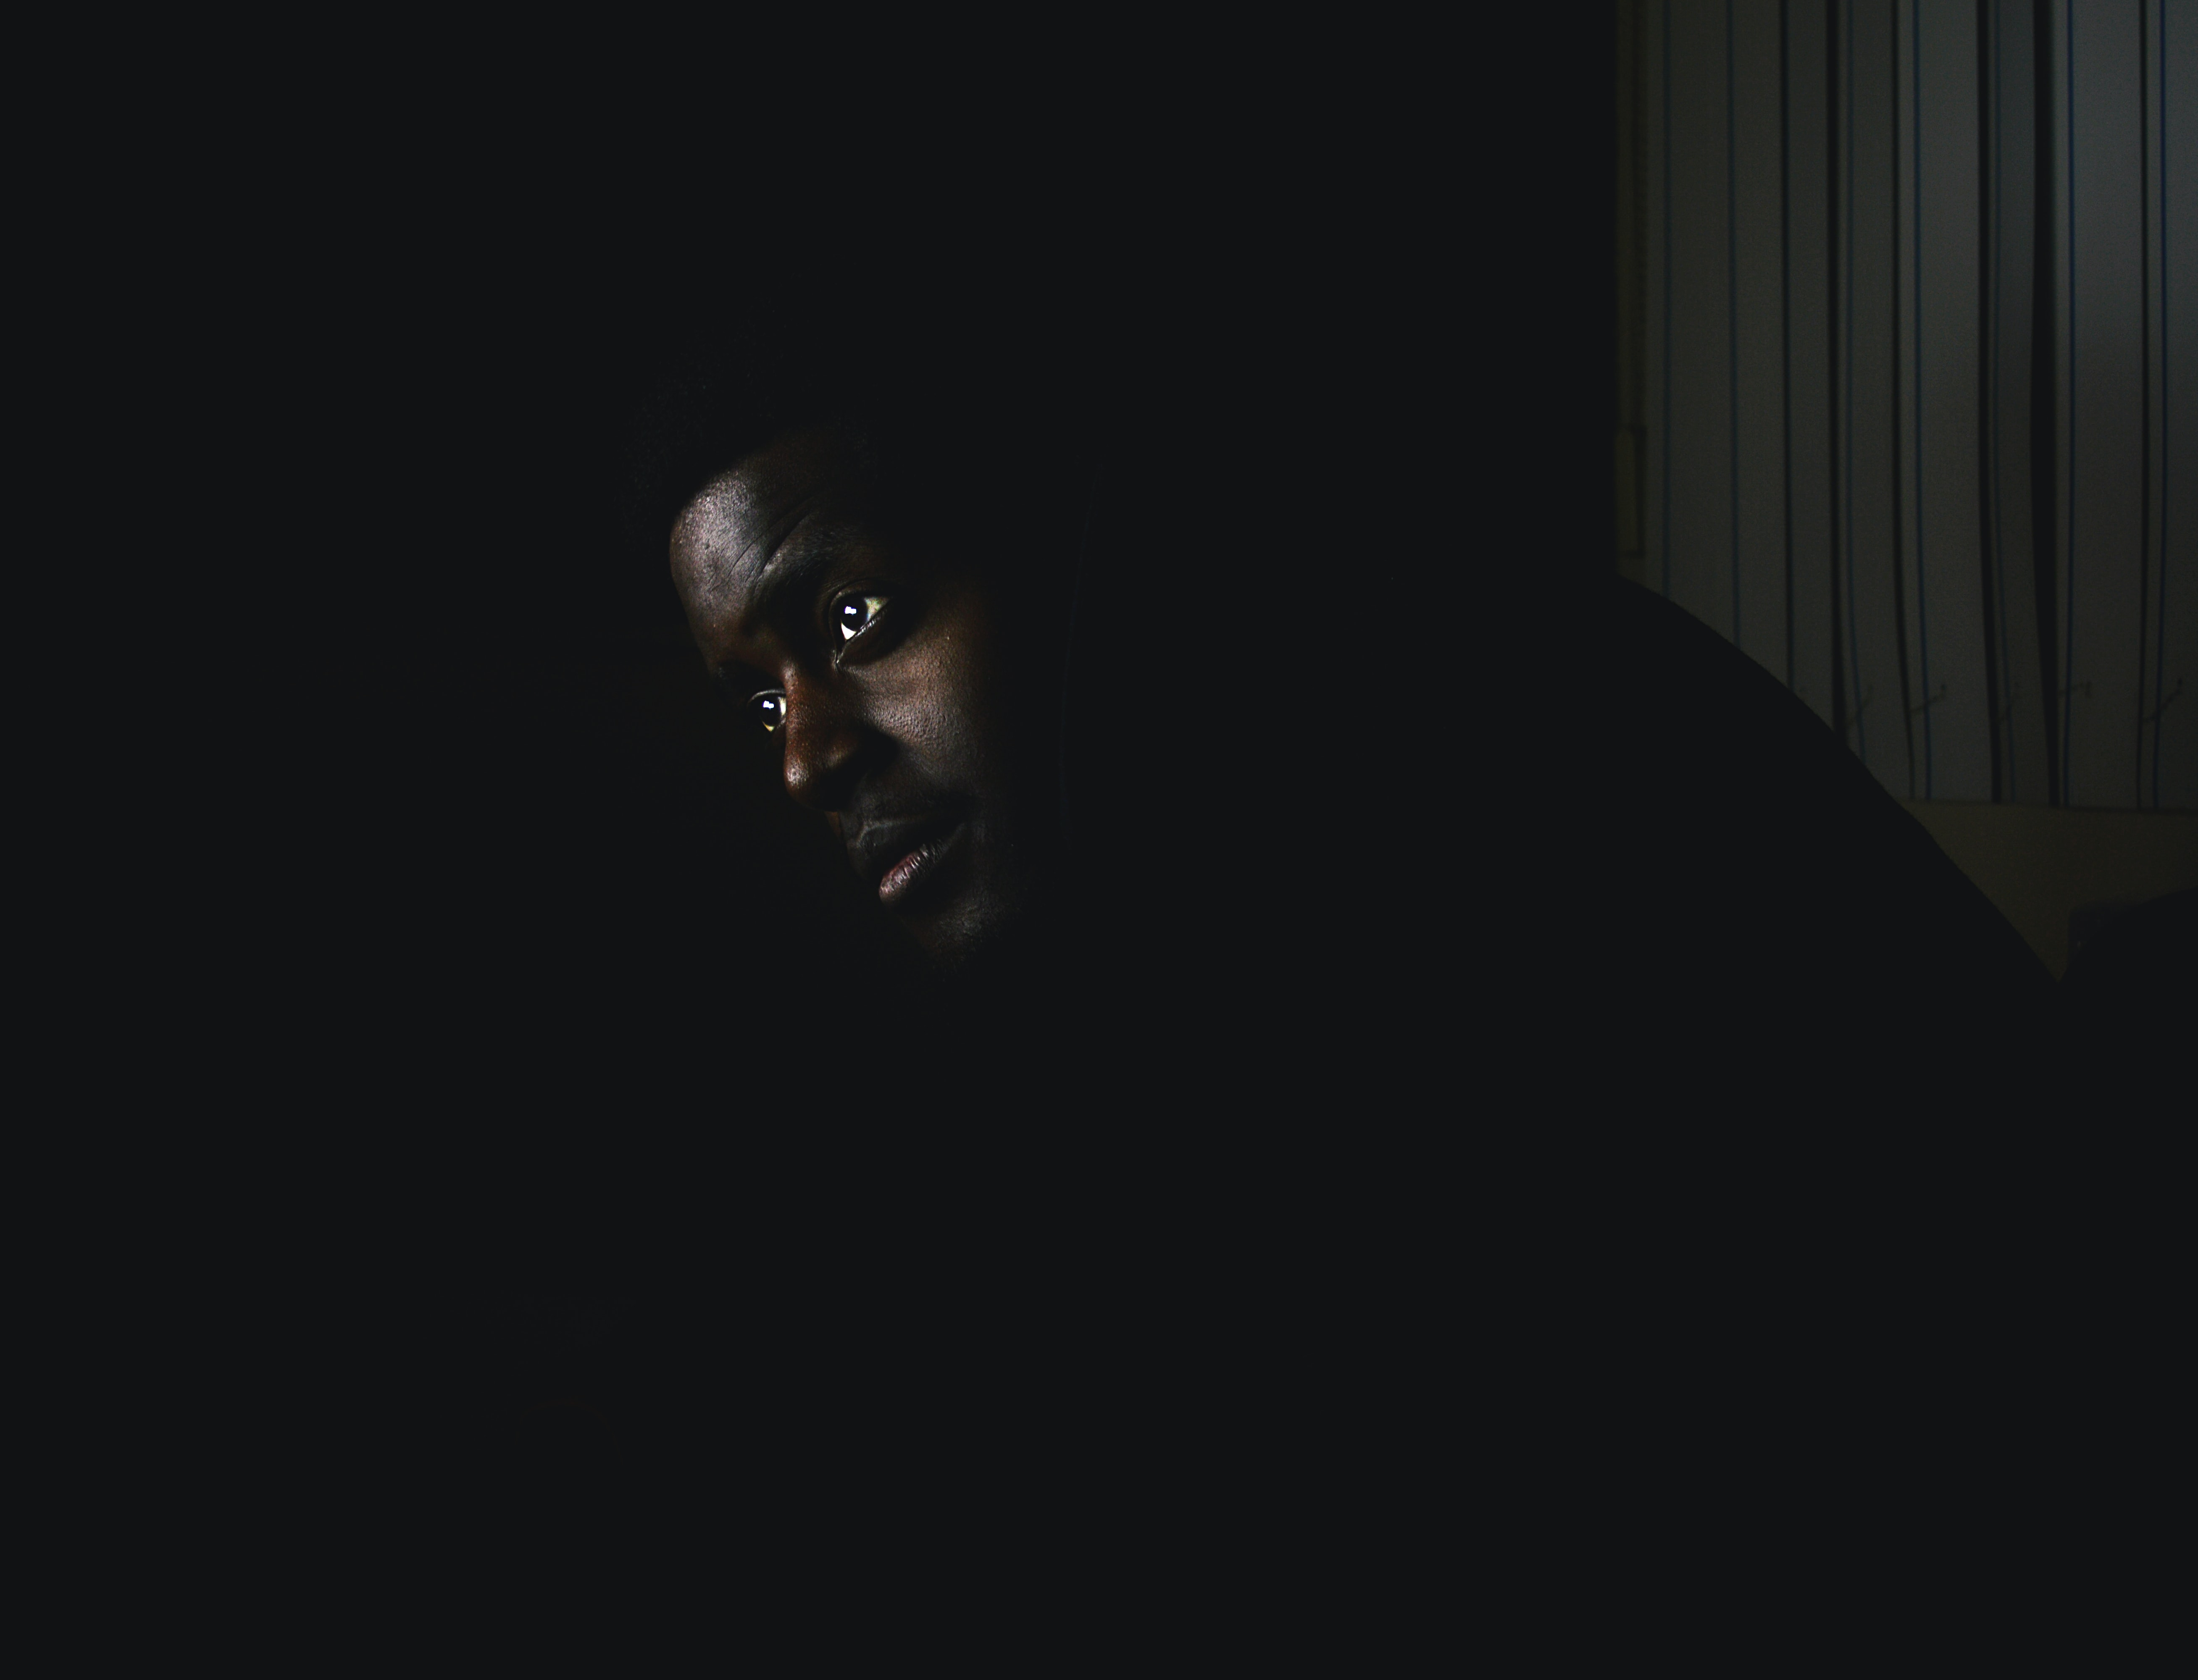 man in darkness